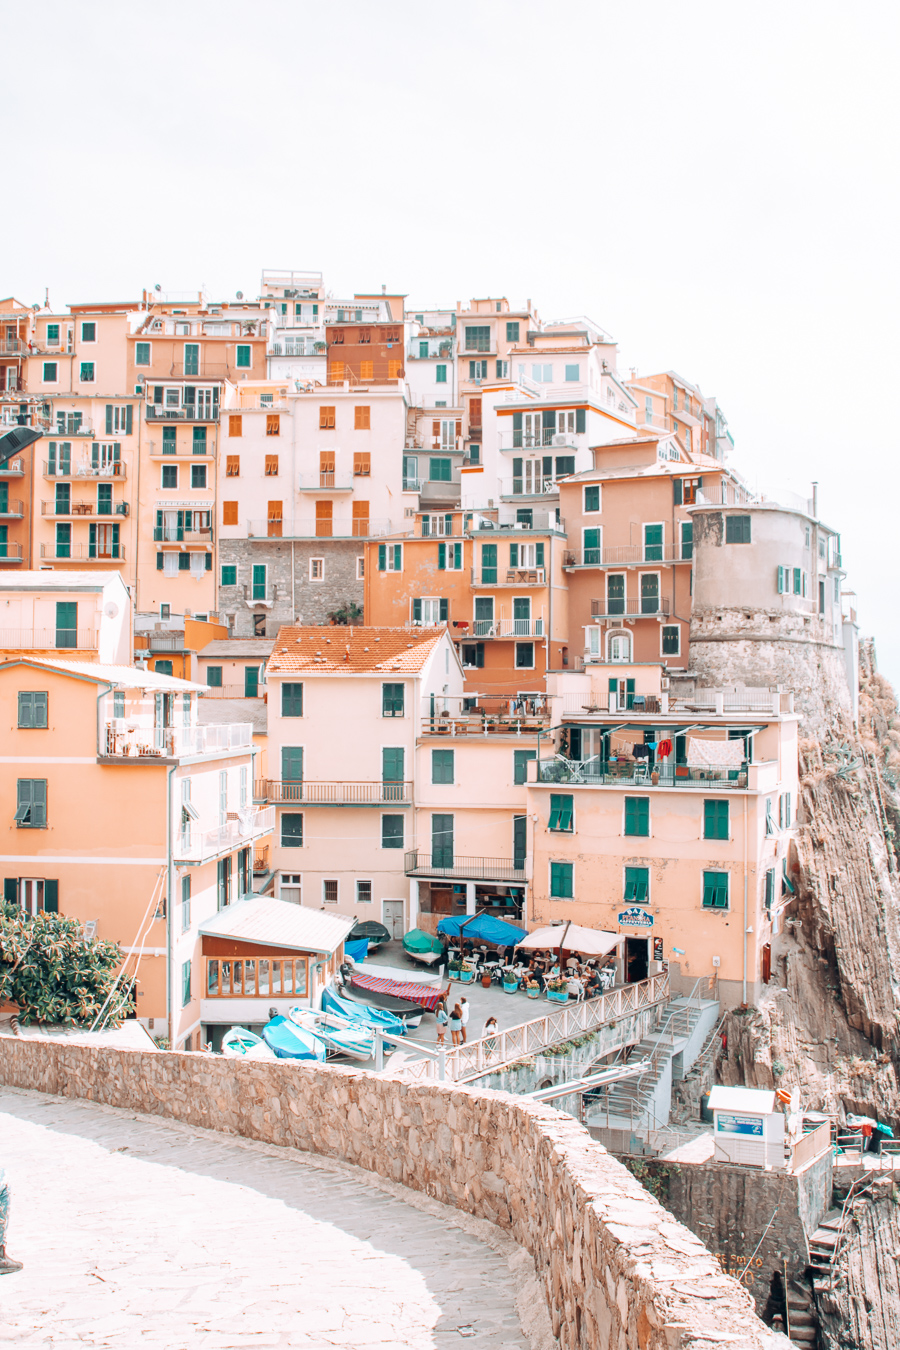 A view of Manarola in Cinque Terre